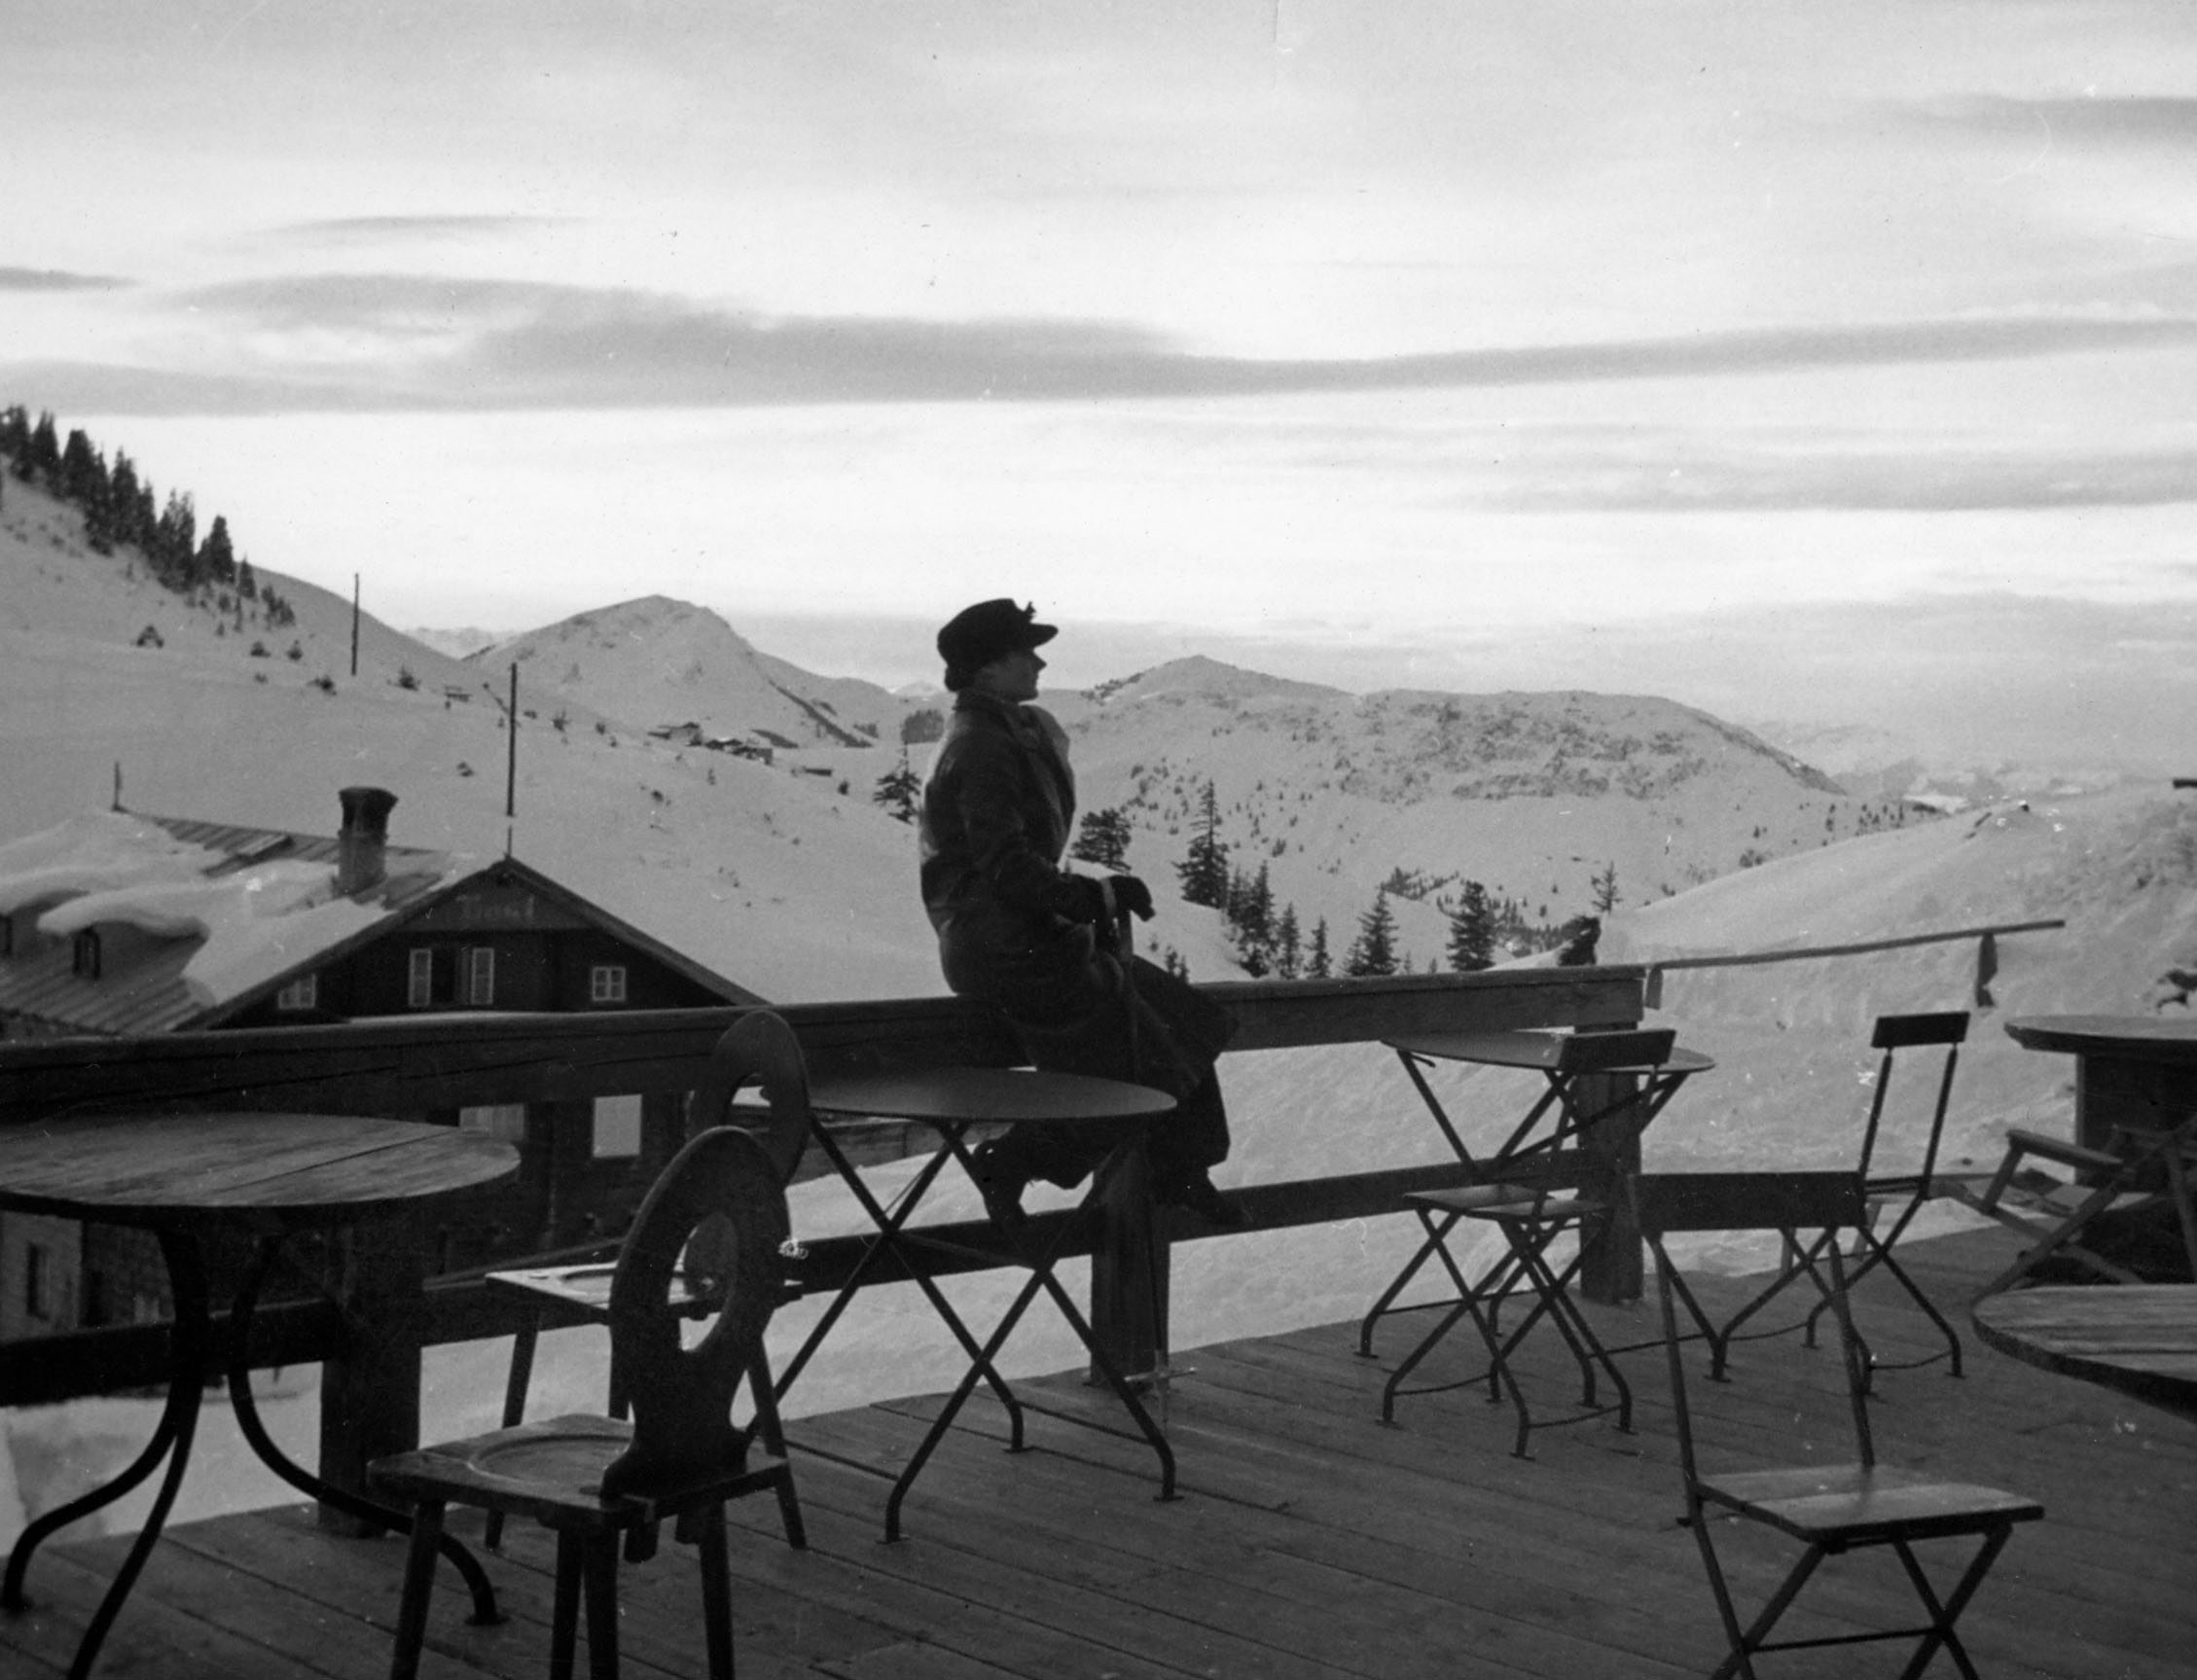 Clare gazes into the distance in Kitzbuehel, Austria, on New Year's Jan. 1939